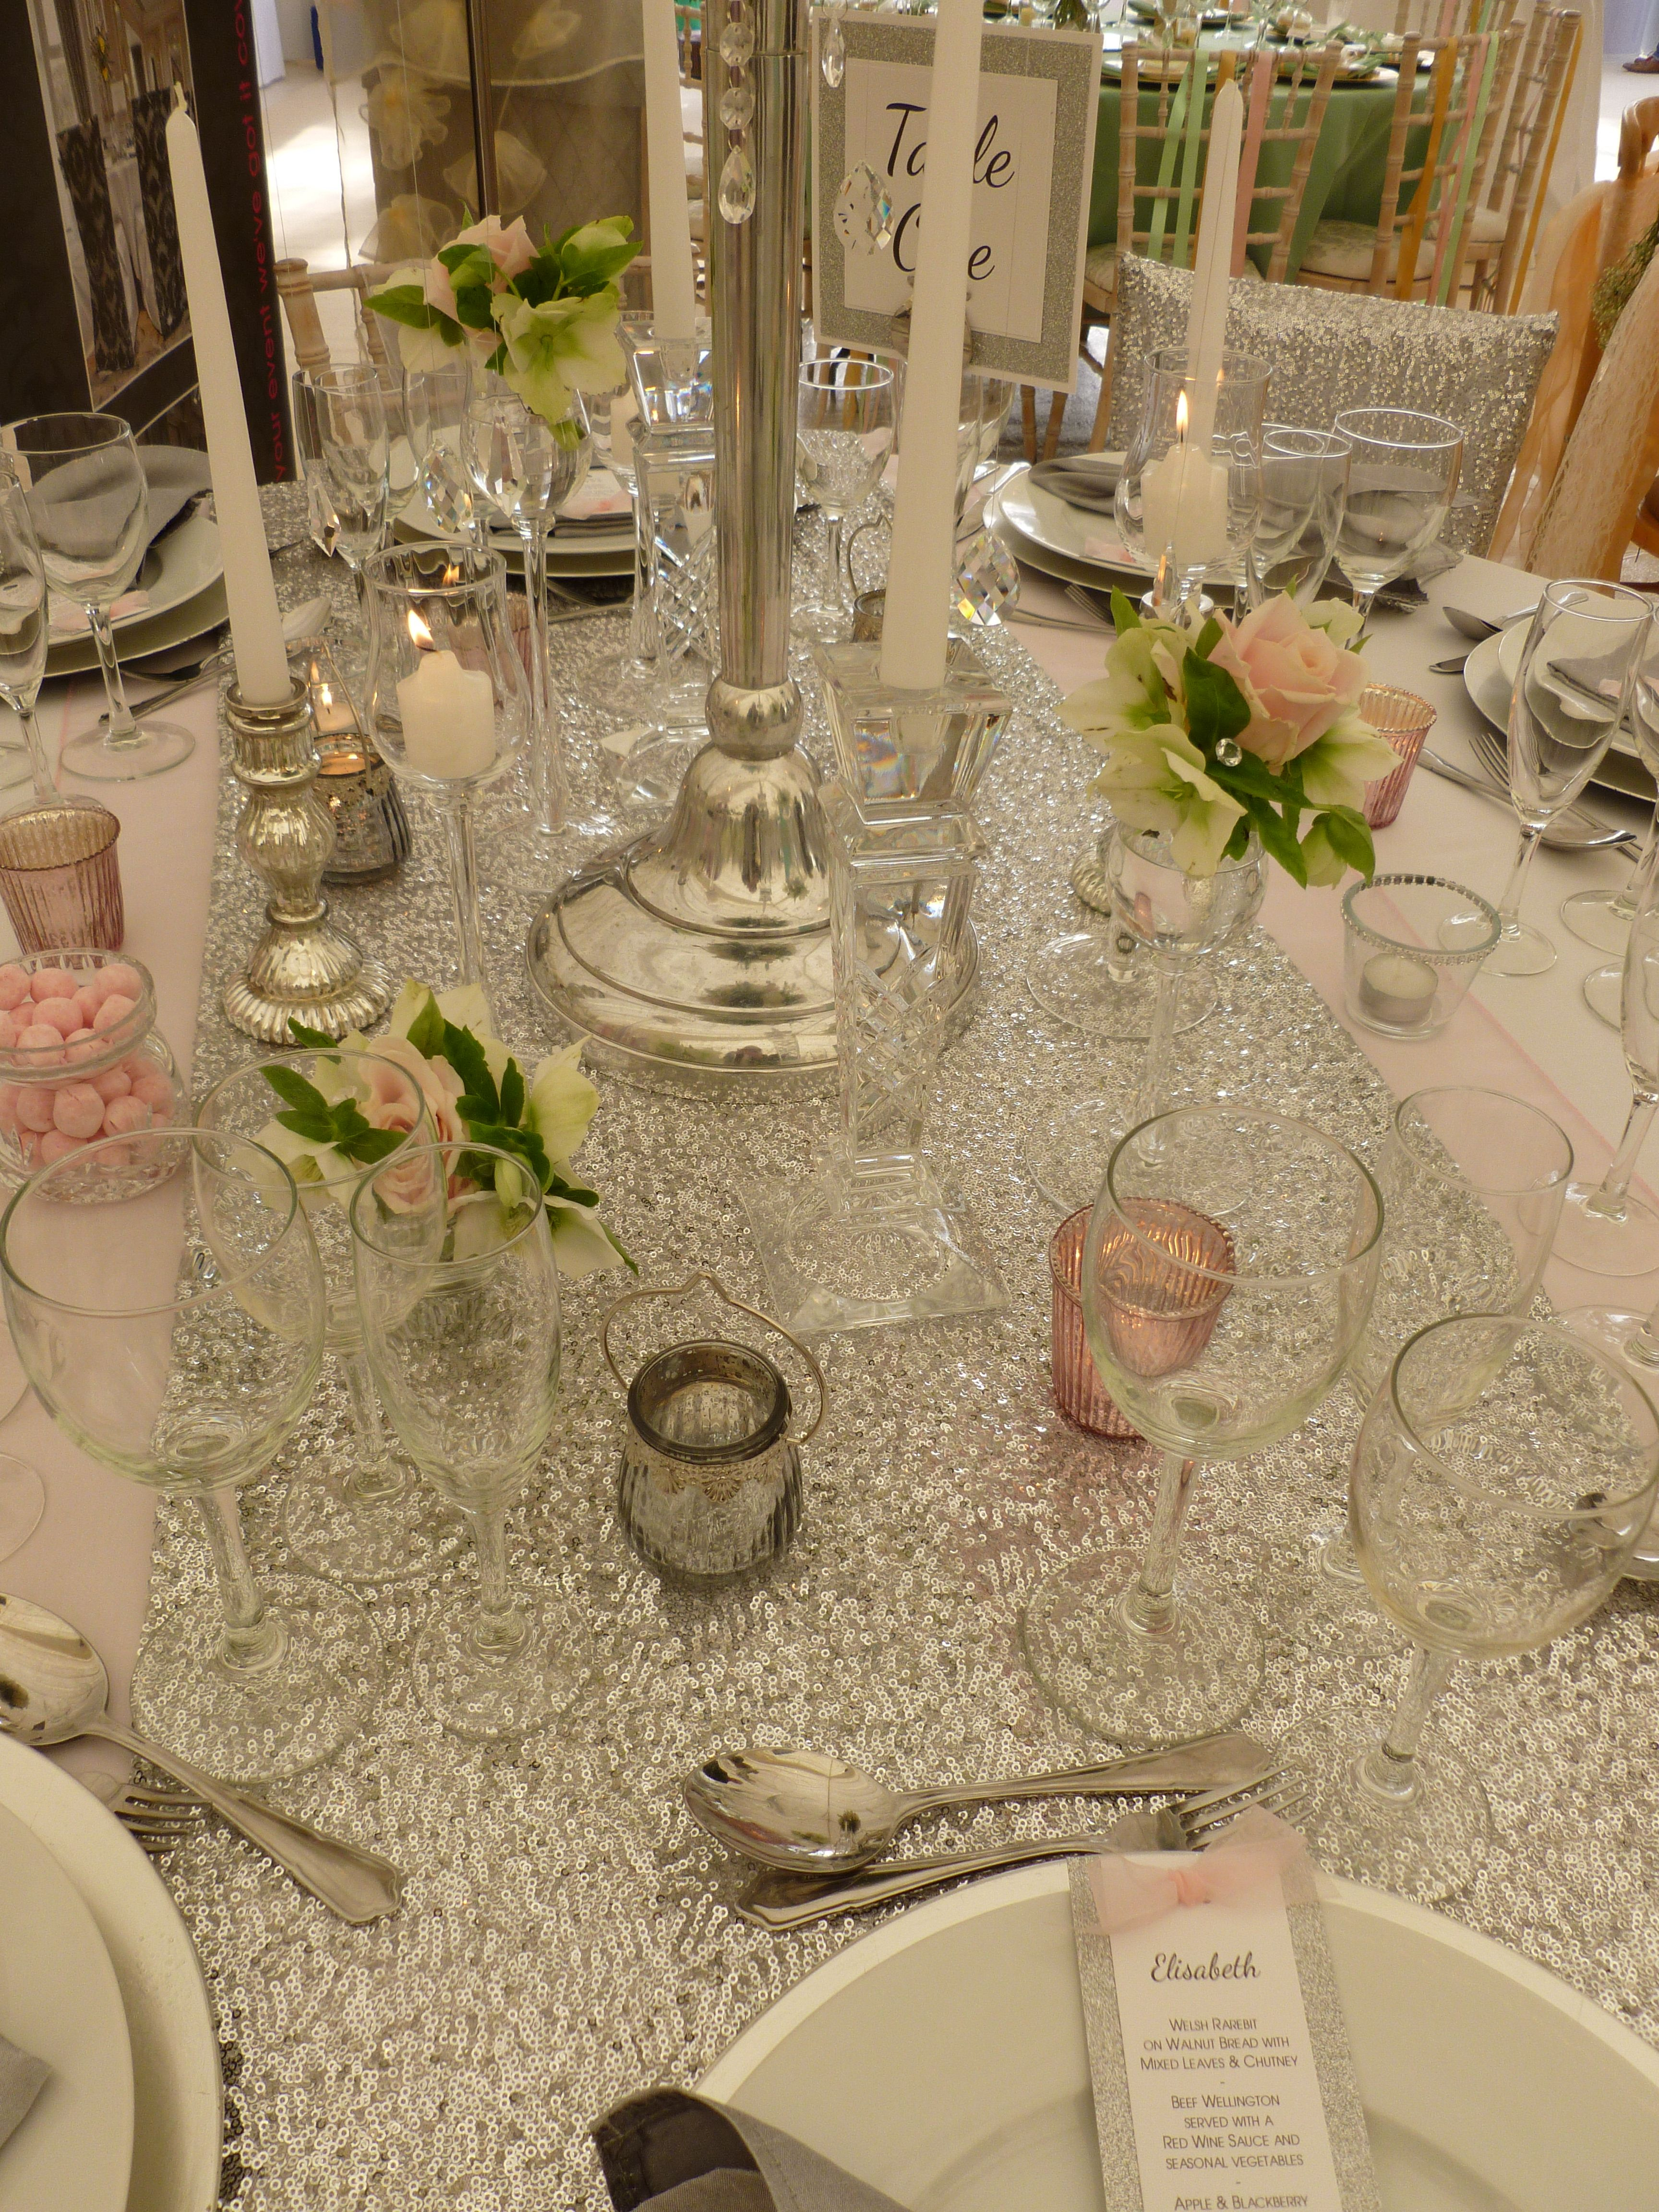 Xmas wedding decorations november 2018 Sequin table runner by Simply Bows and Chair Covers gorgeous